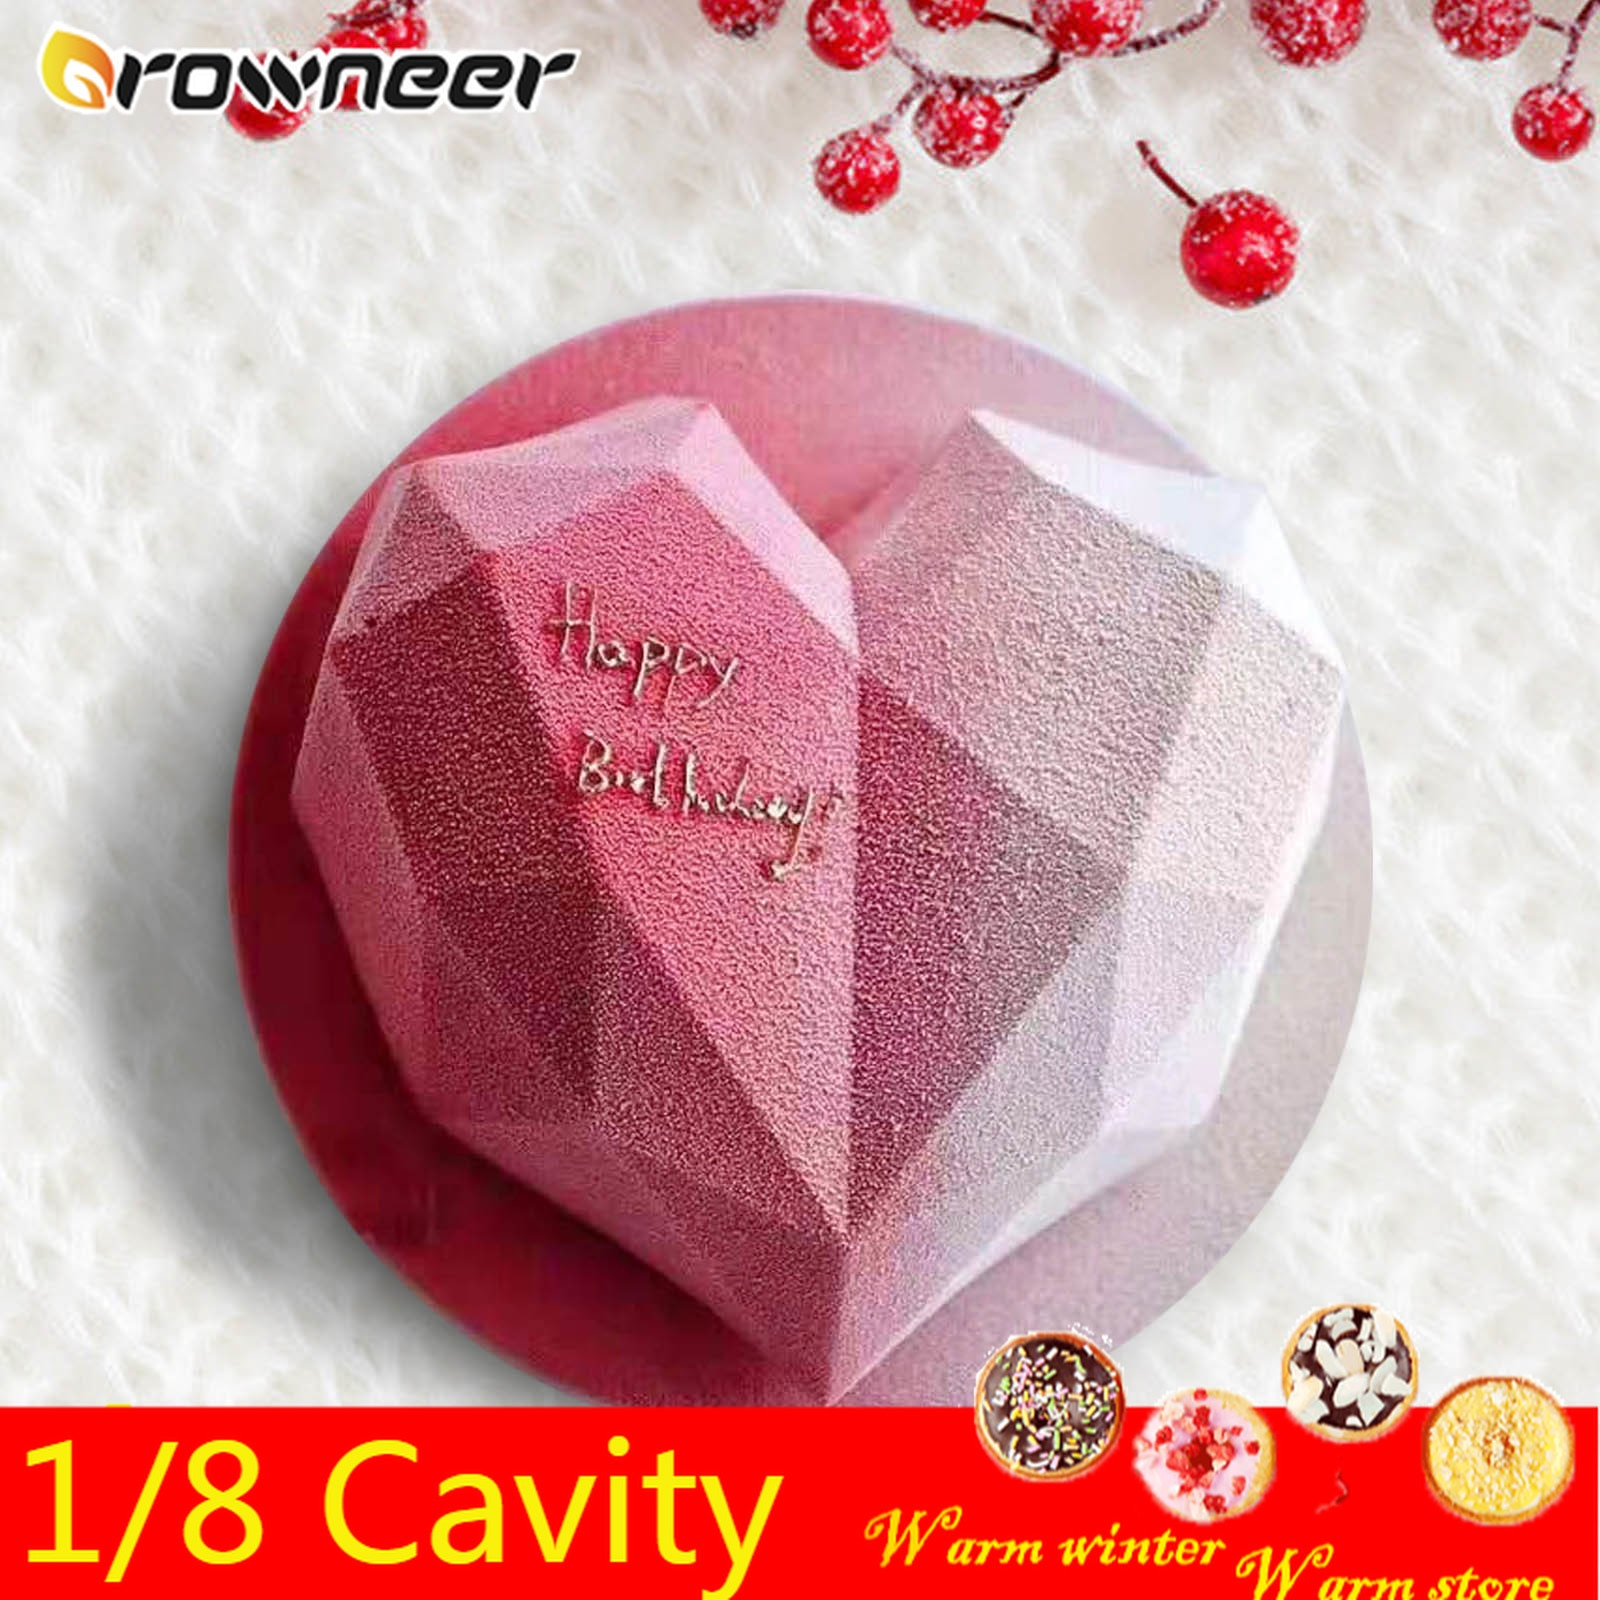 1/8 Cavity 3D Diamond Love Heart Shape Mold Silicone Chocolate Cookie Muffin Baking Tool Sponge Mousse Dessert Cake Decorating